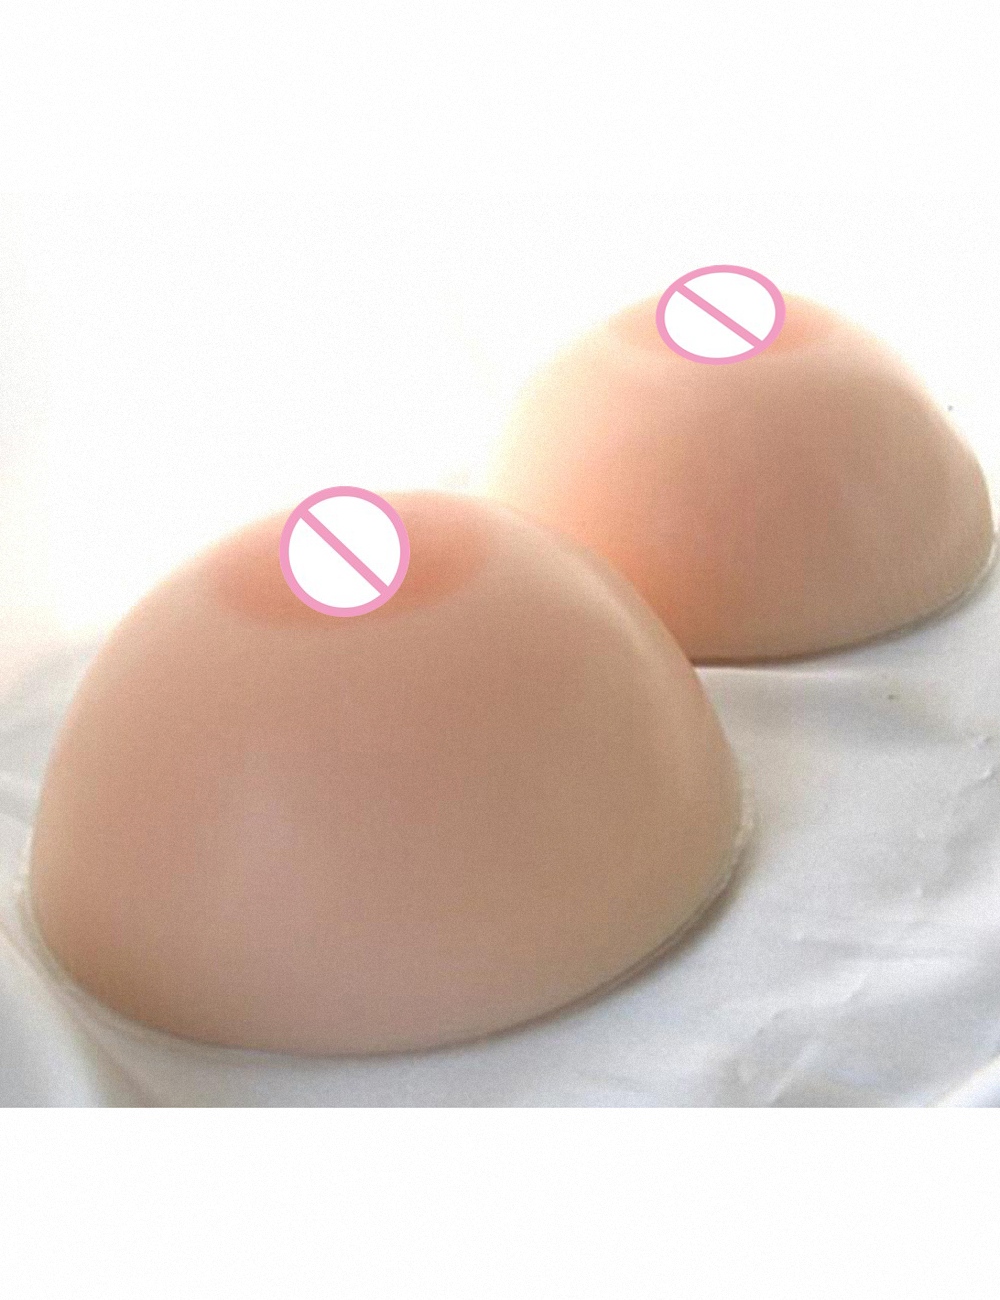 ФОТО Round Shape 1200G/Pair Realistic Artificial Silicone Breast Form False  Boob Enhancer Sexy  Bust Tit Chest For Crossdresser